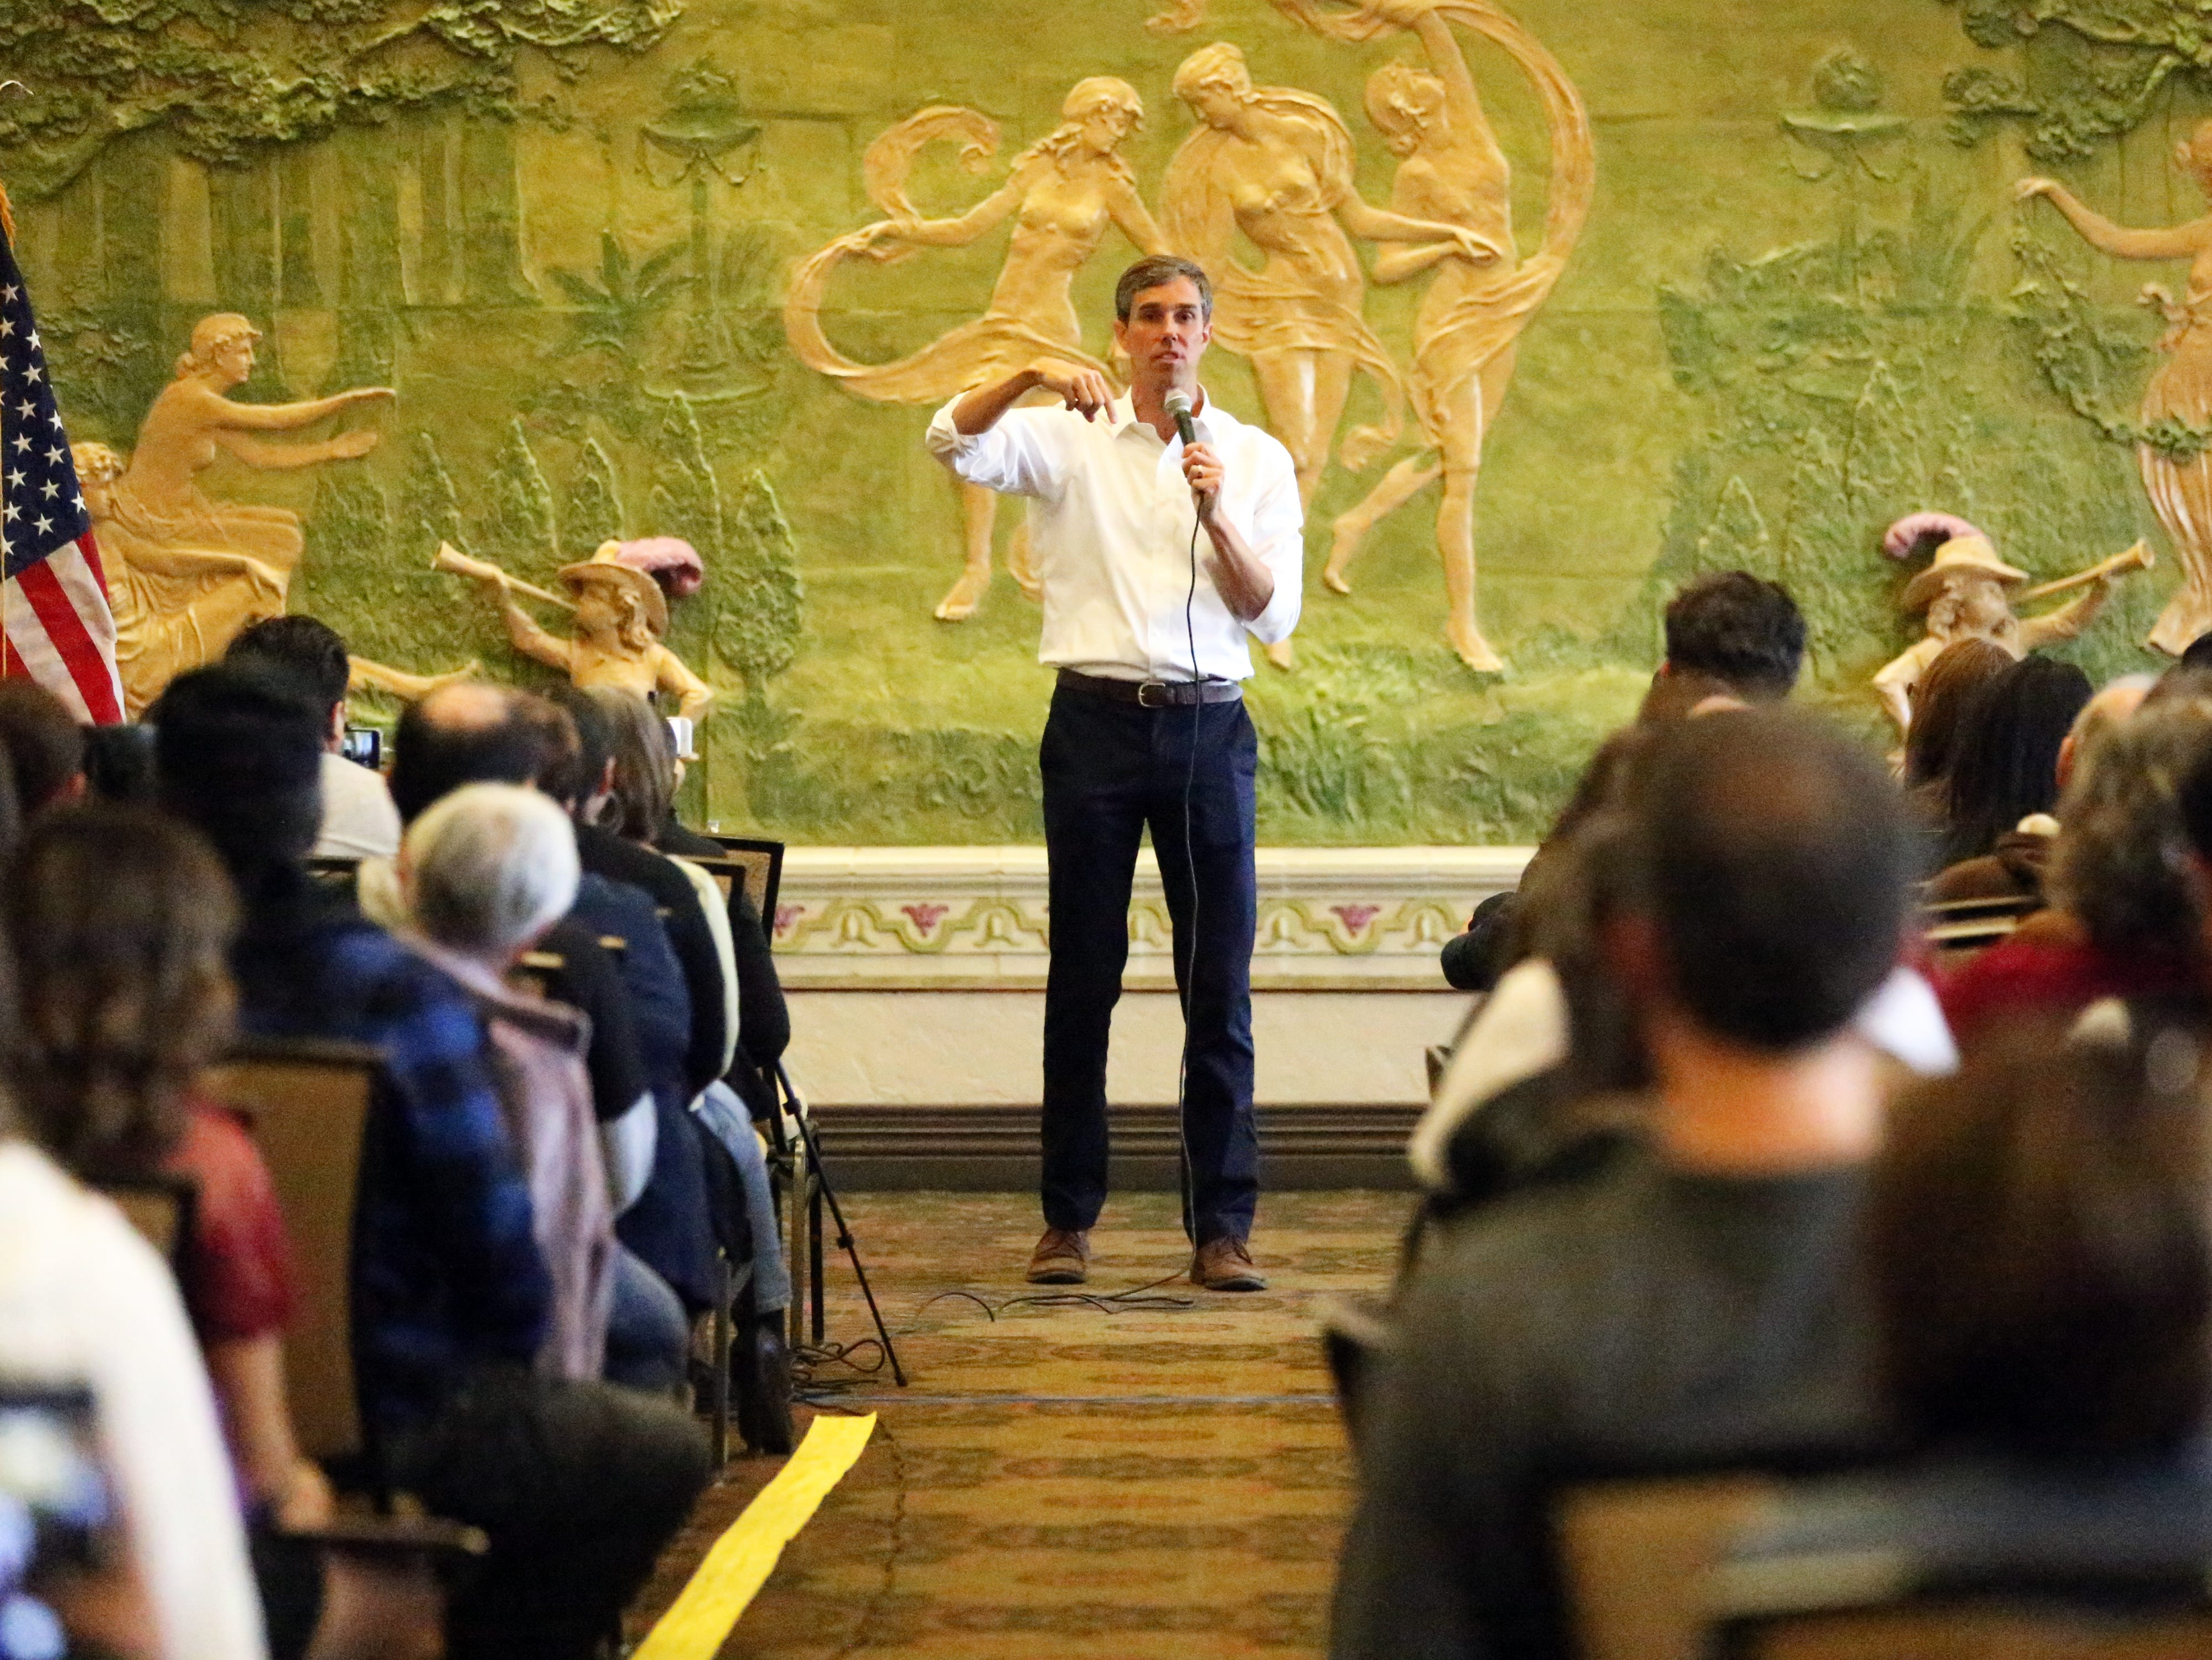 U.S. Rep. Beto O'Rourke held his first town hall since the midterm elections Monday at the El Paso Community Foundation room in downtown El Paso.